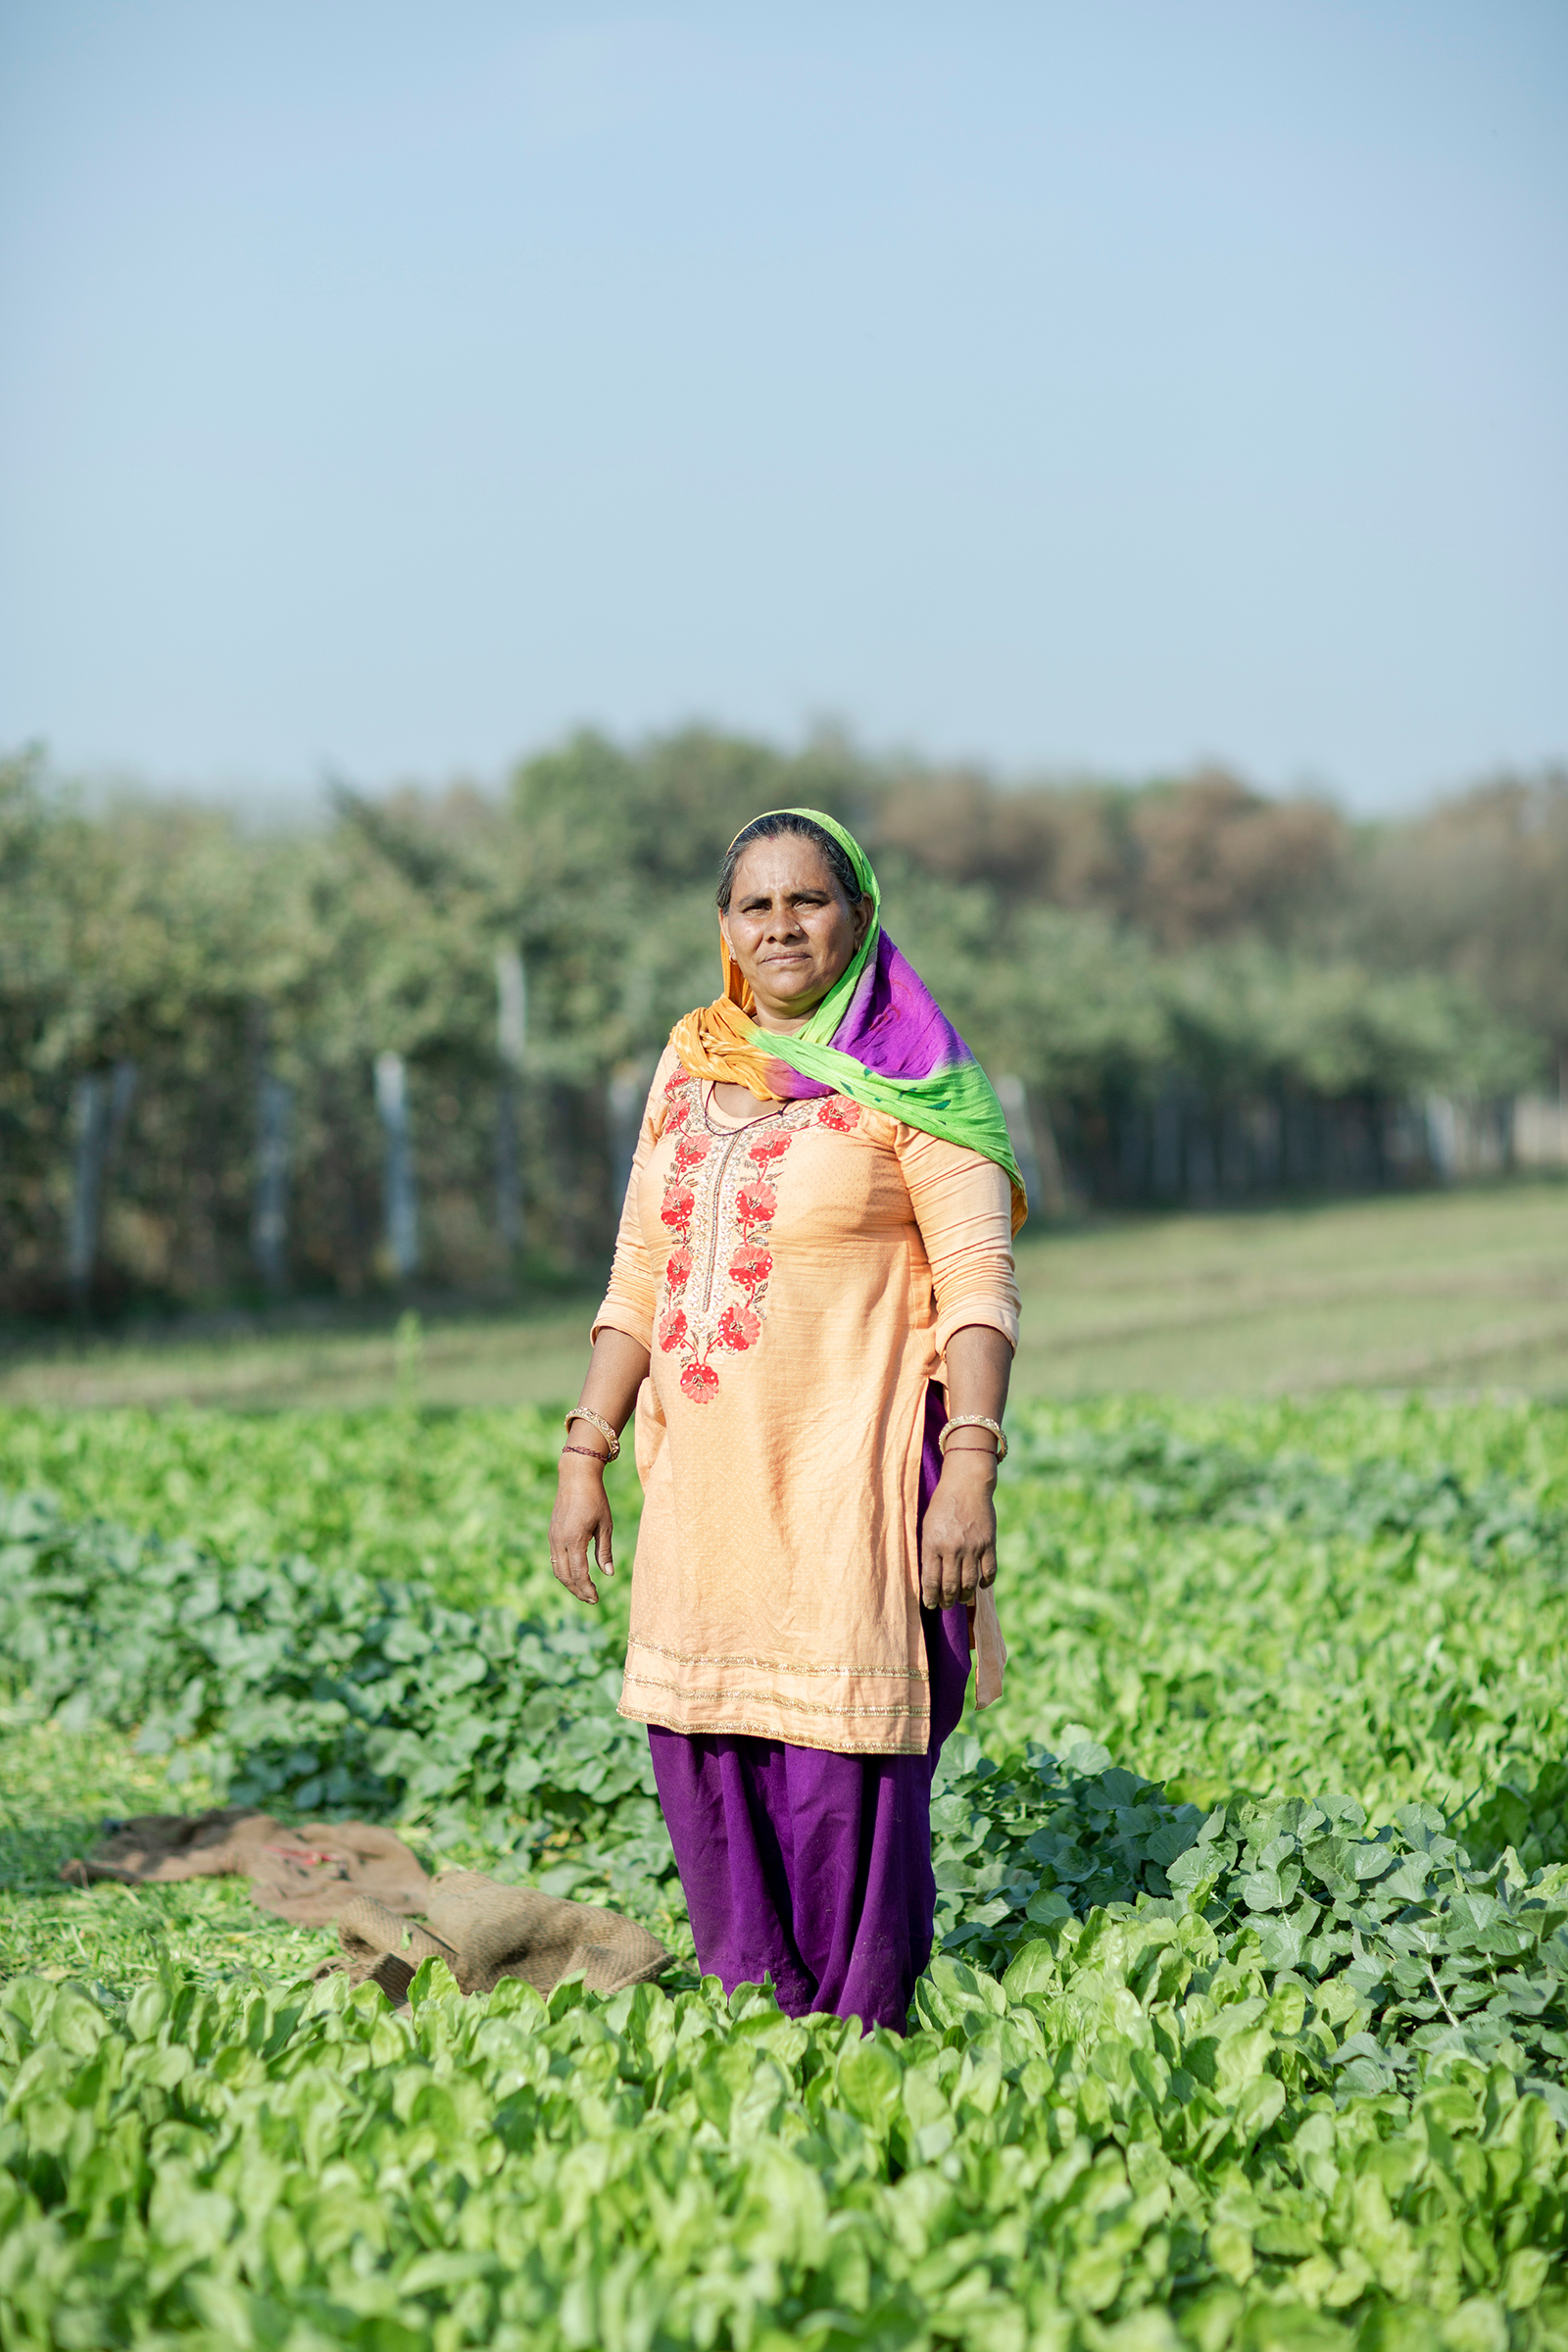 'I Cannot Be Intimidated. I Cannot Be Bought.' The Women Leading India's Farmers' Protests